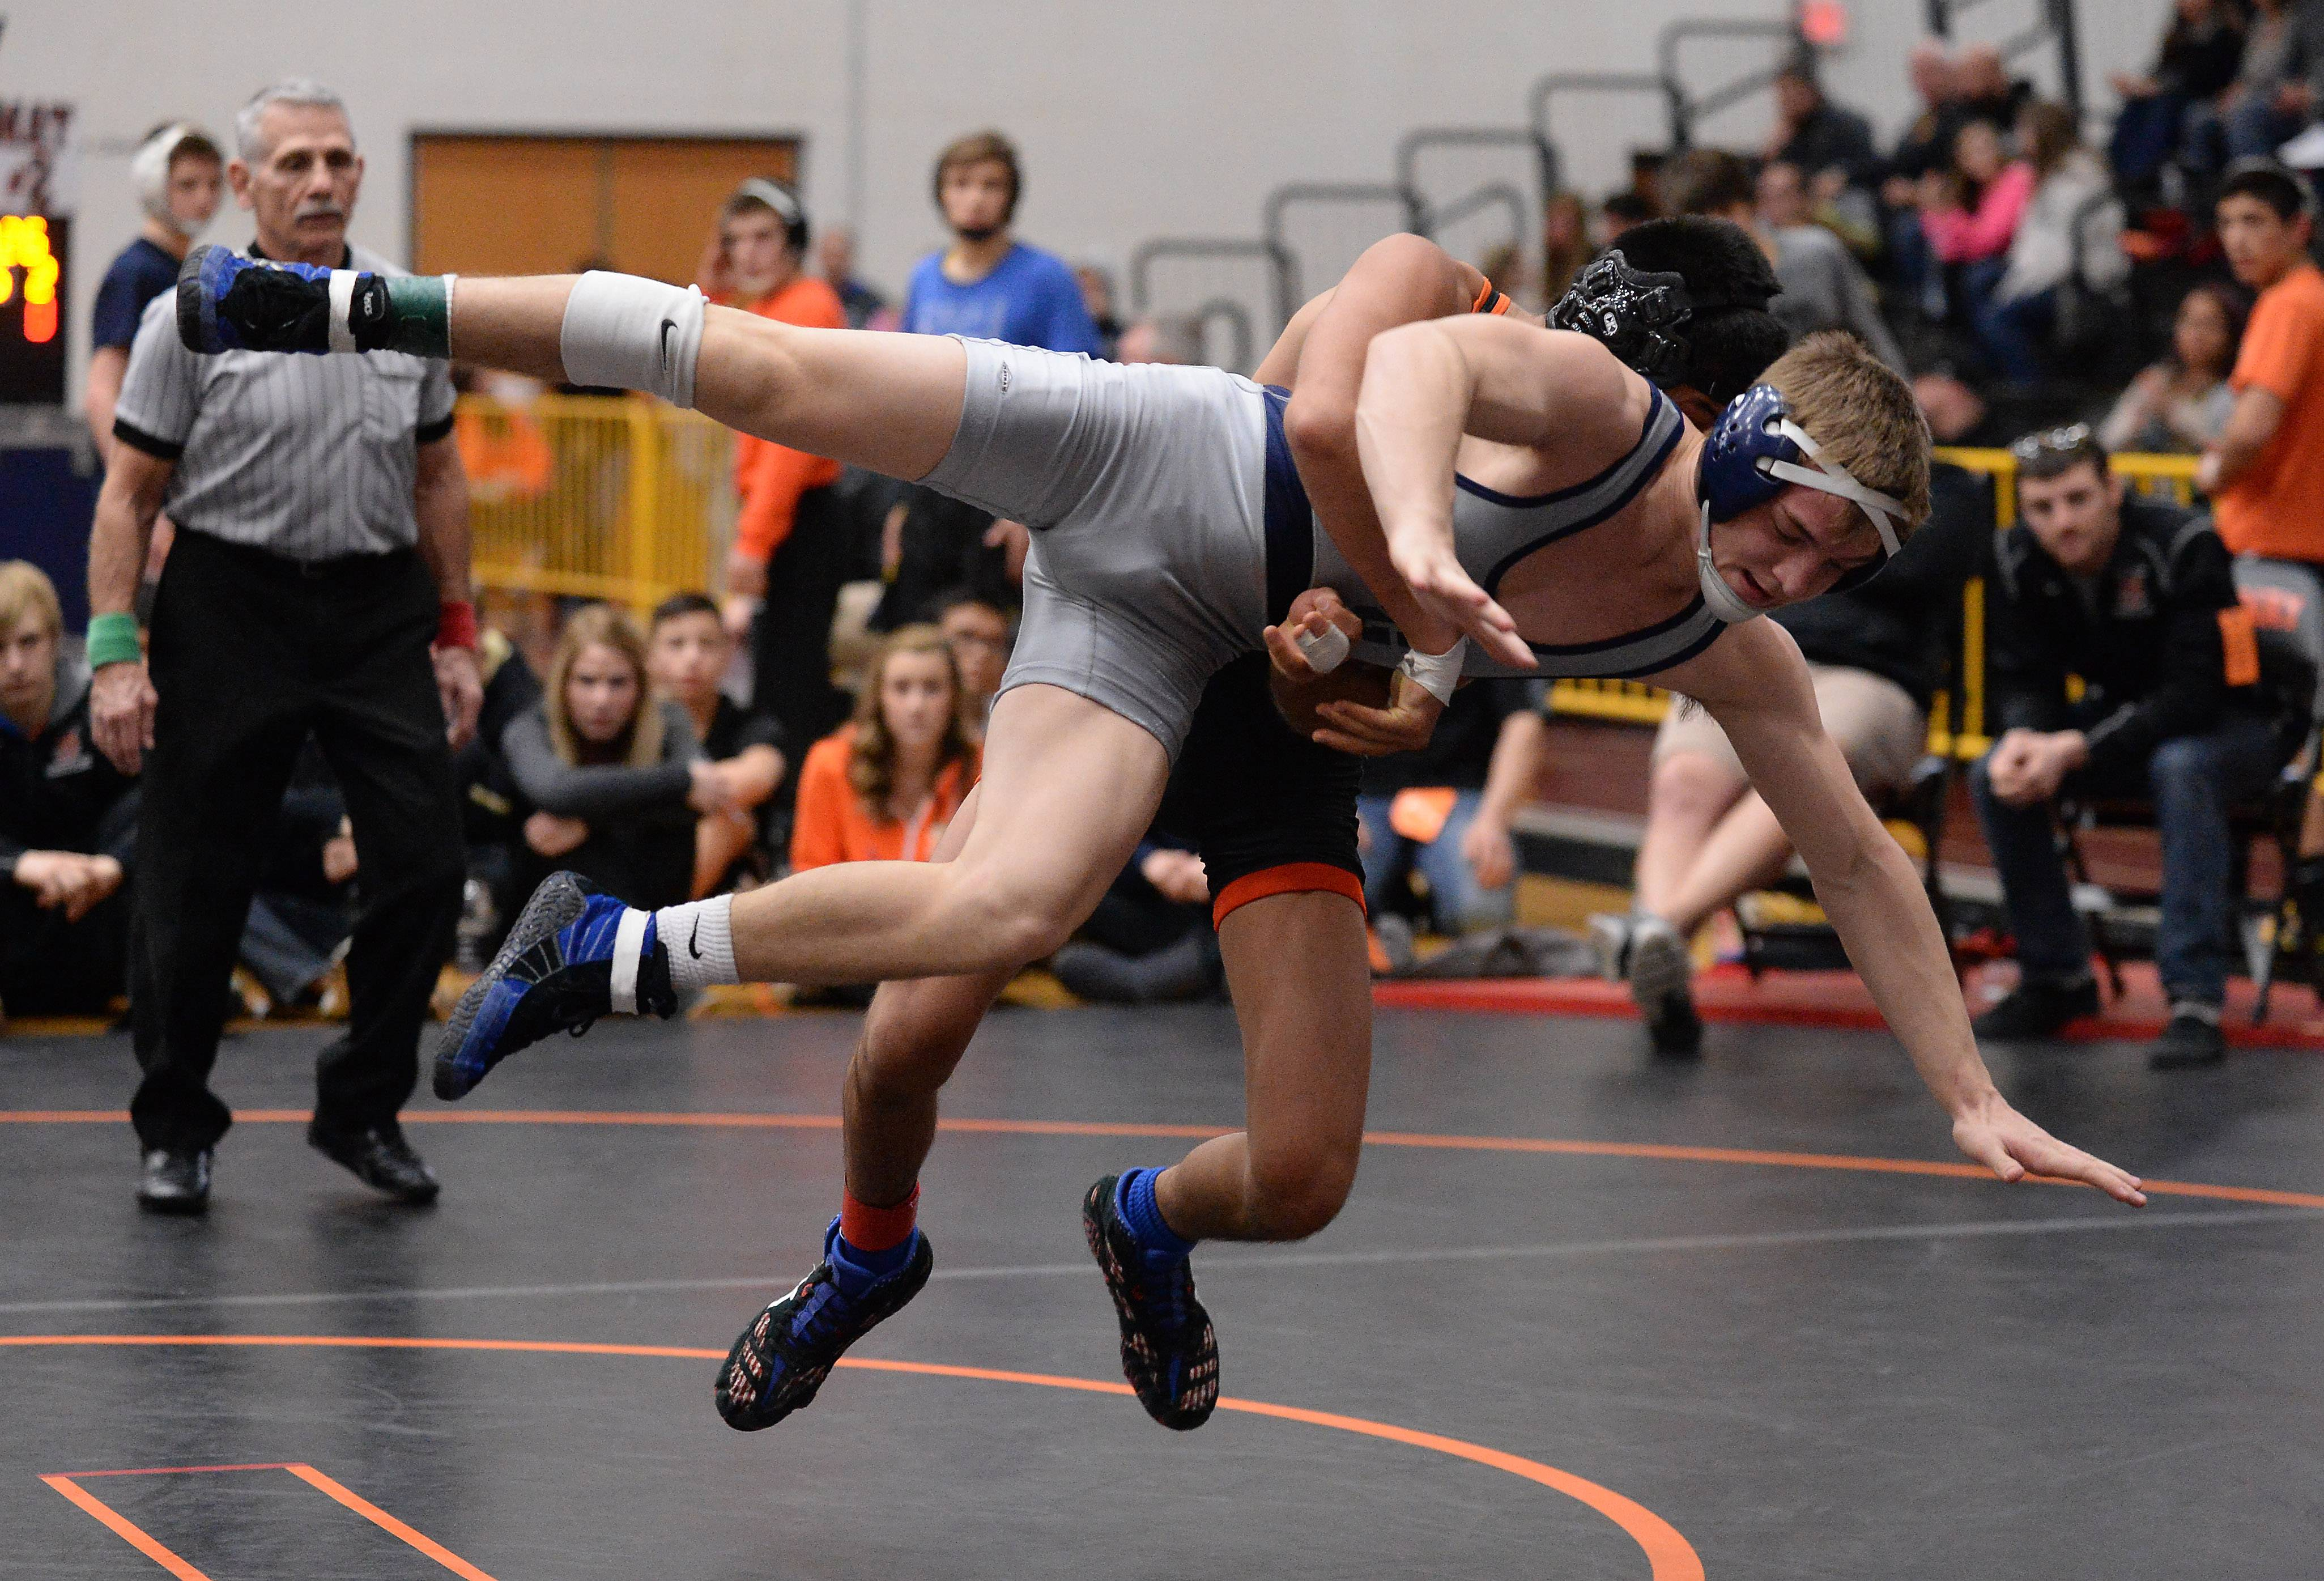 Michael Cullen of Cary Grove is tossed to the ground by Lenny Peterson of Crystal Lake Central but recovers for the eventual win in the 126 weight class for the win at the 2015 Fox Valley Conference Wrestling Tournament at McHenry High School.